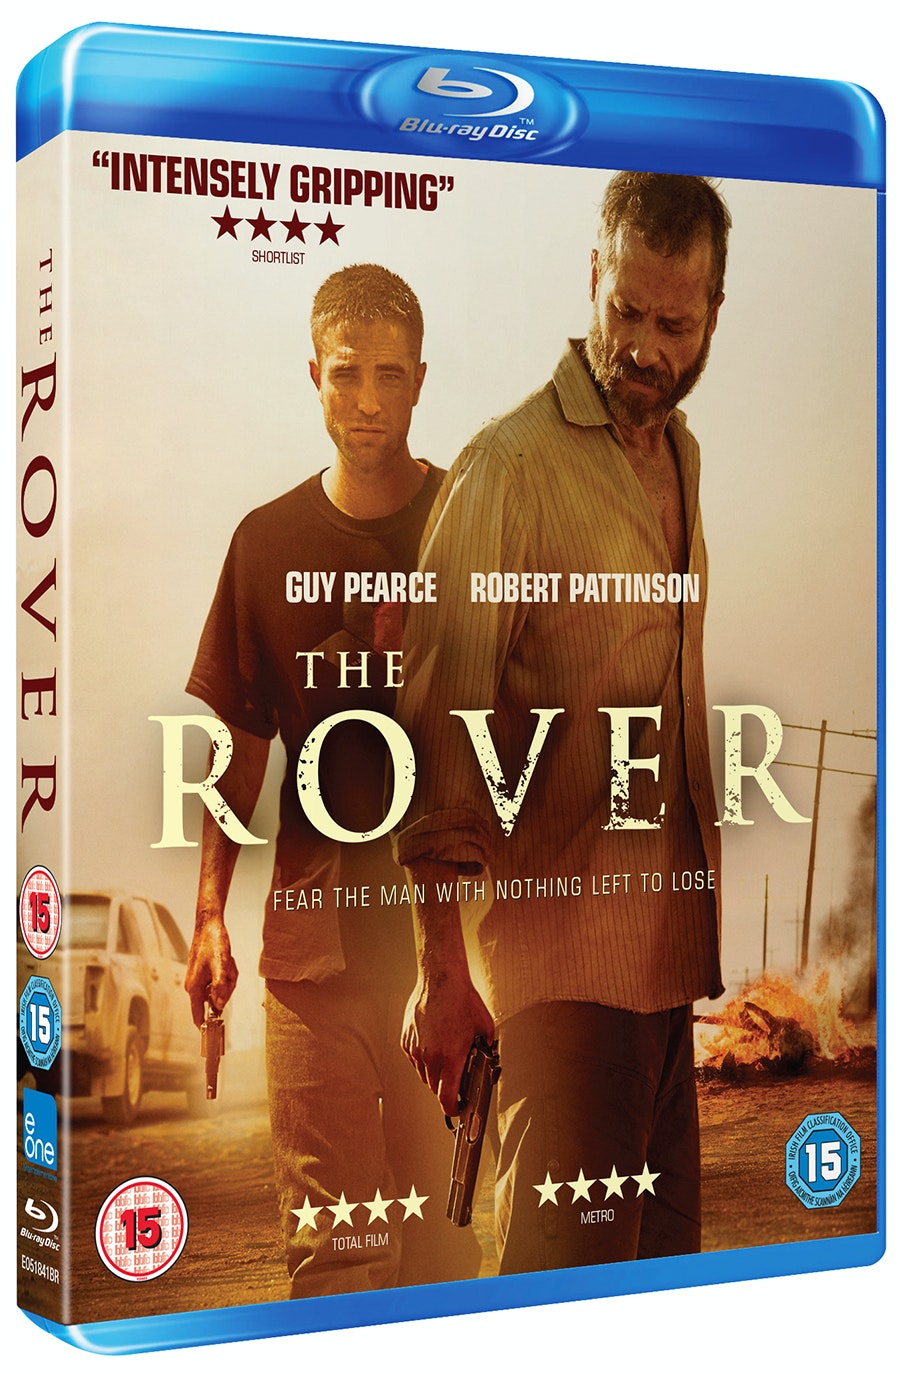 The Rover sweepstakes